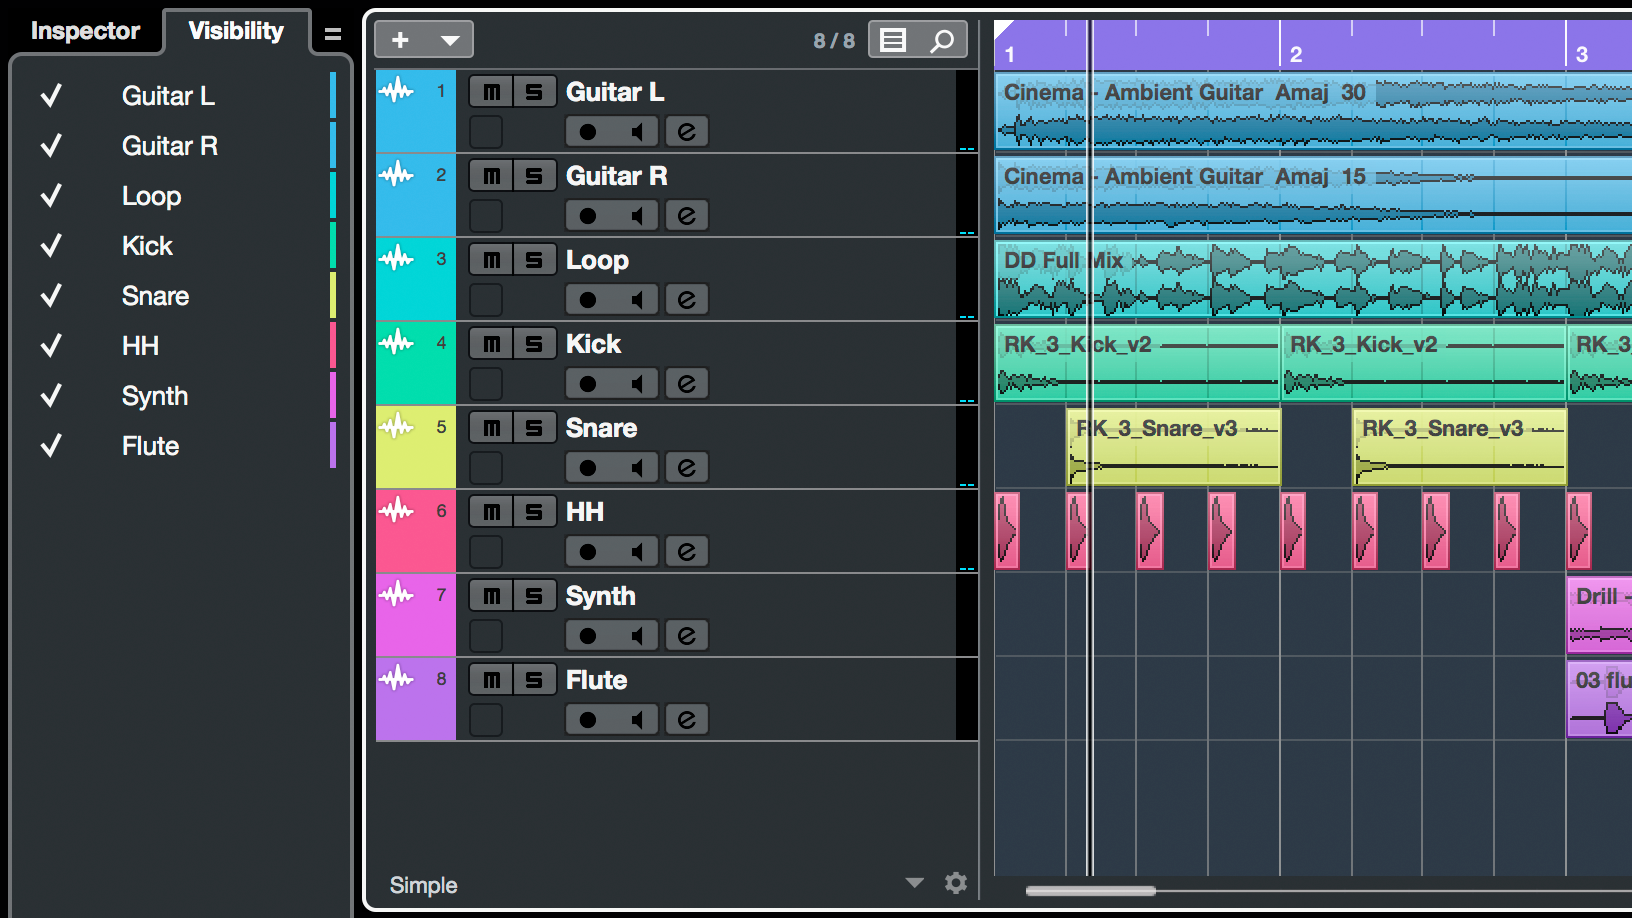 Compare the versions of Cubase | Steinberg